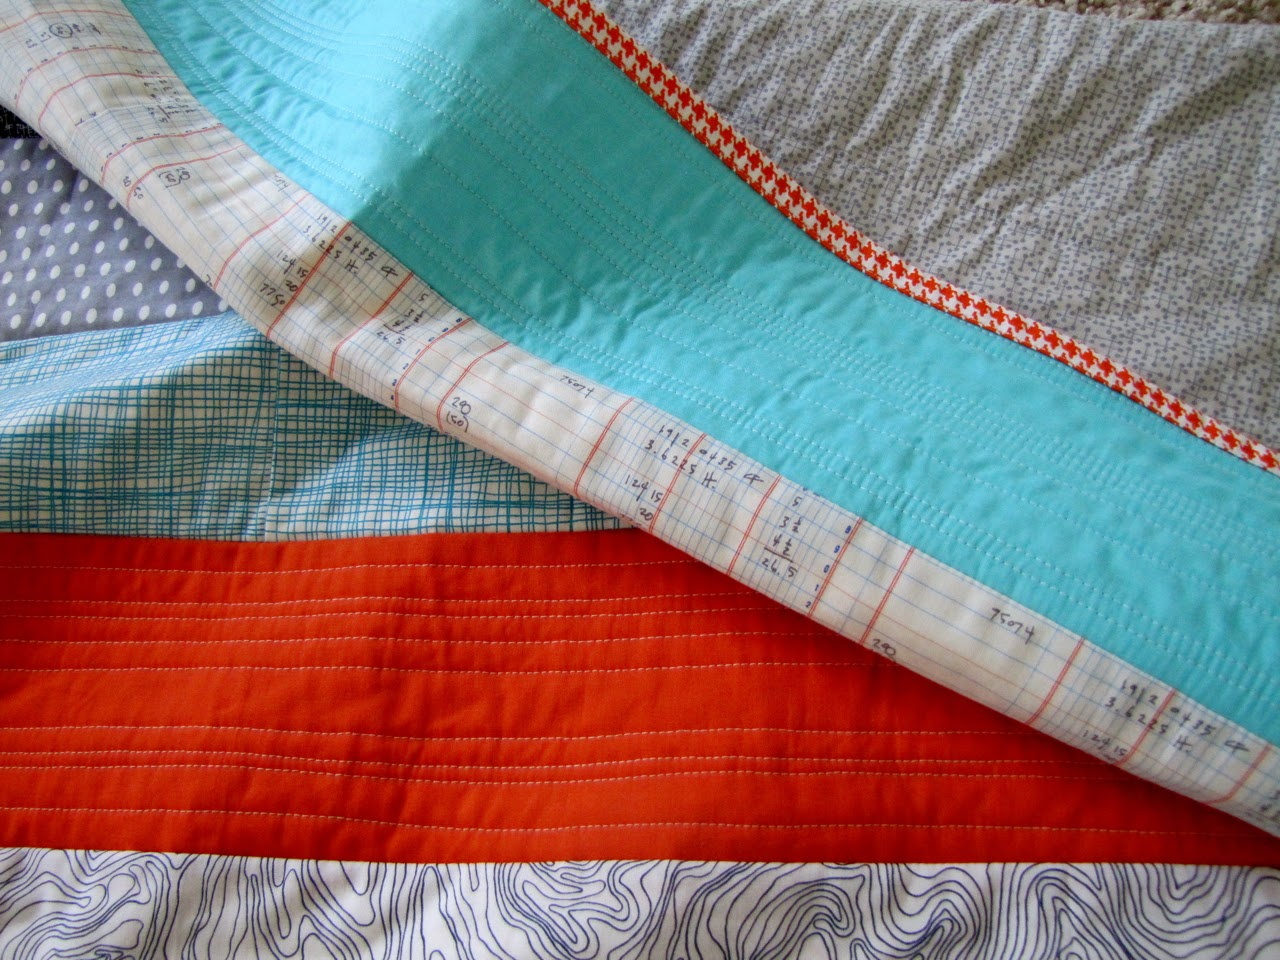 http://snippysisters.blogspot.com/2013/07/three-baby-quilt-finishes.html